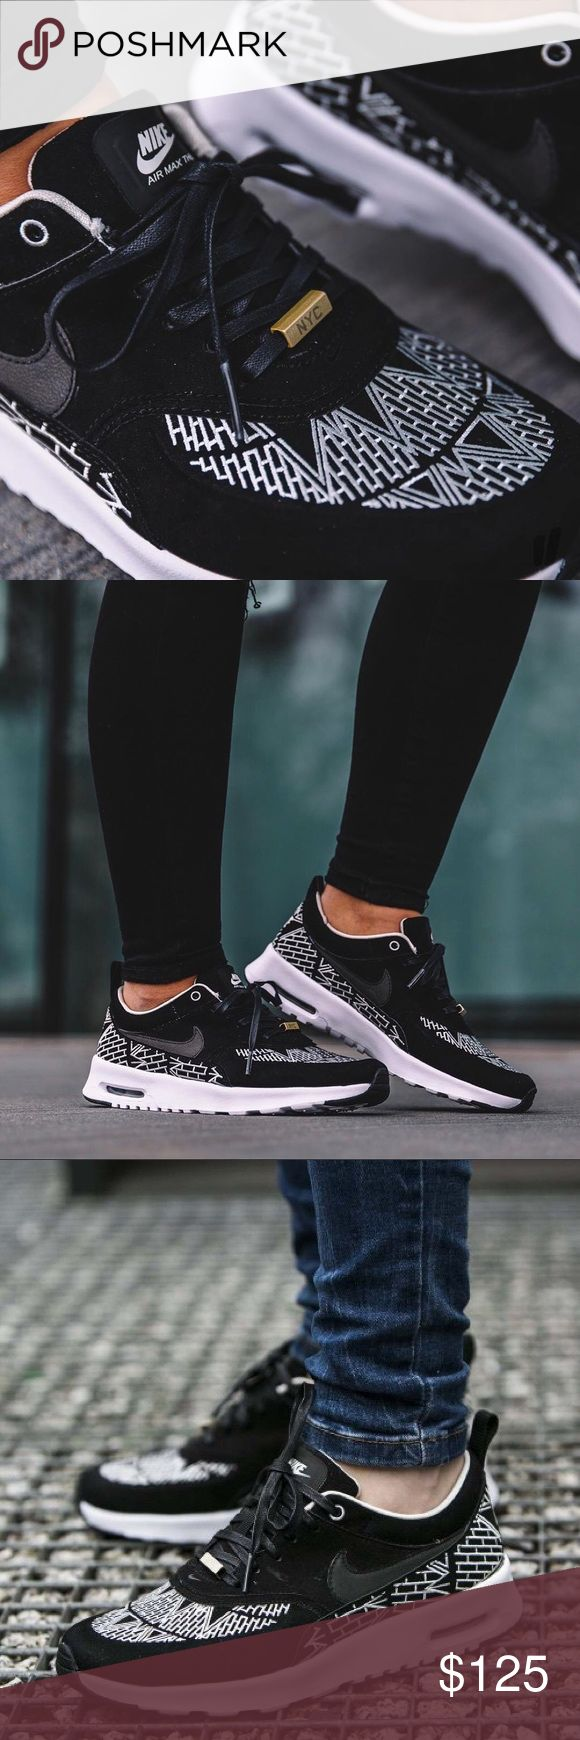 Spotted while shopping on Poshmark: Nike Air Max Thea Suede NYC Sneakers! #poshmark #fashion #shopping #style #Nike #Shoes